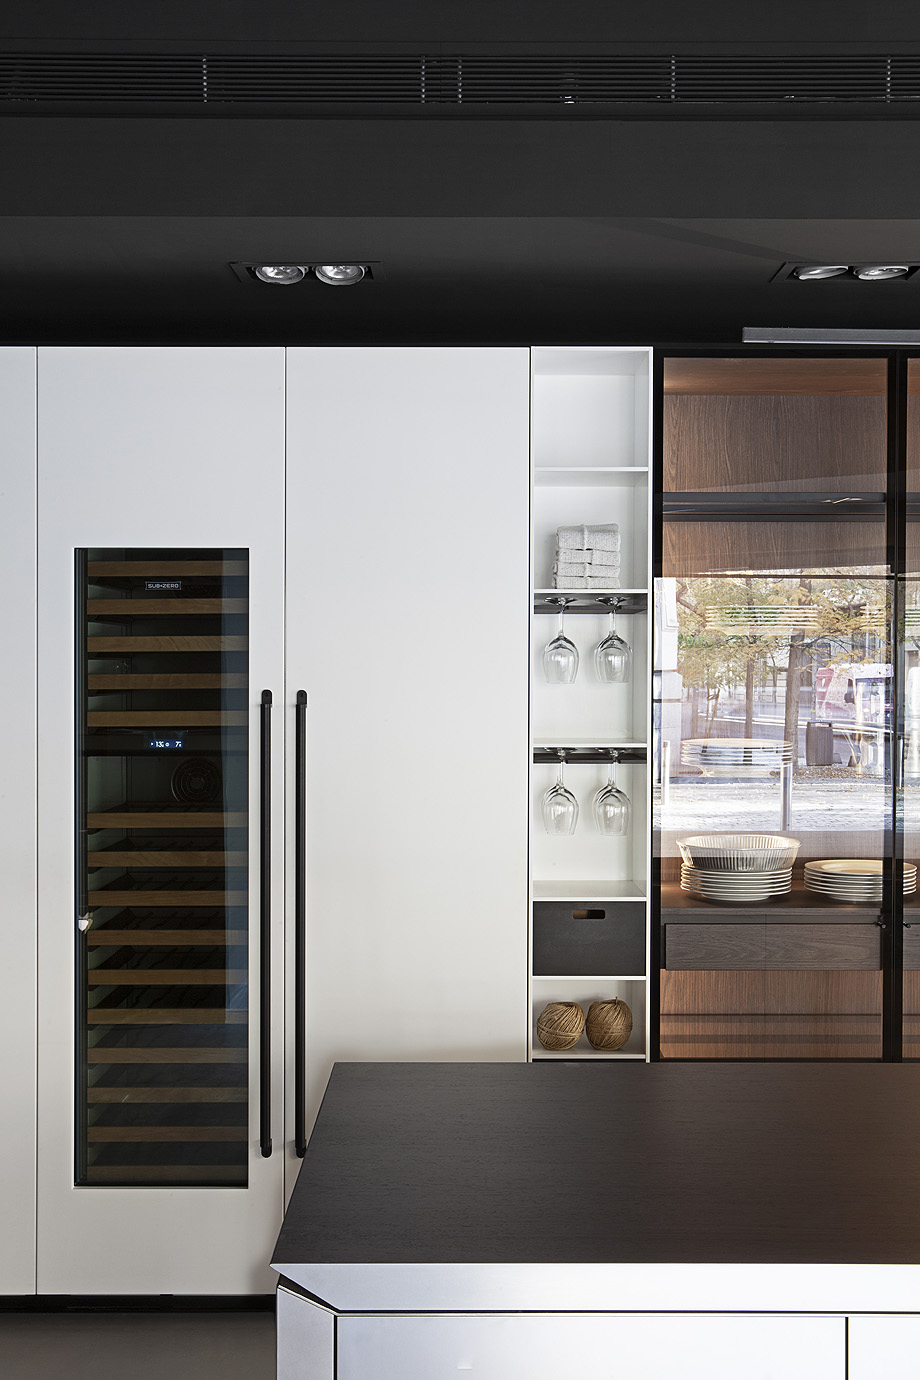 showroom boffi depadova en madrid (8)